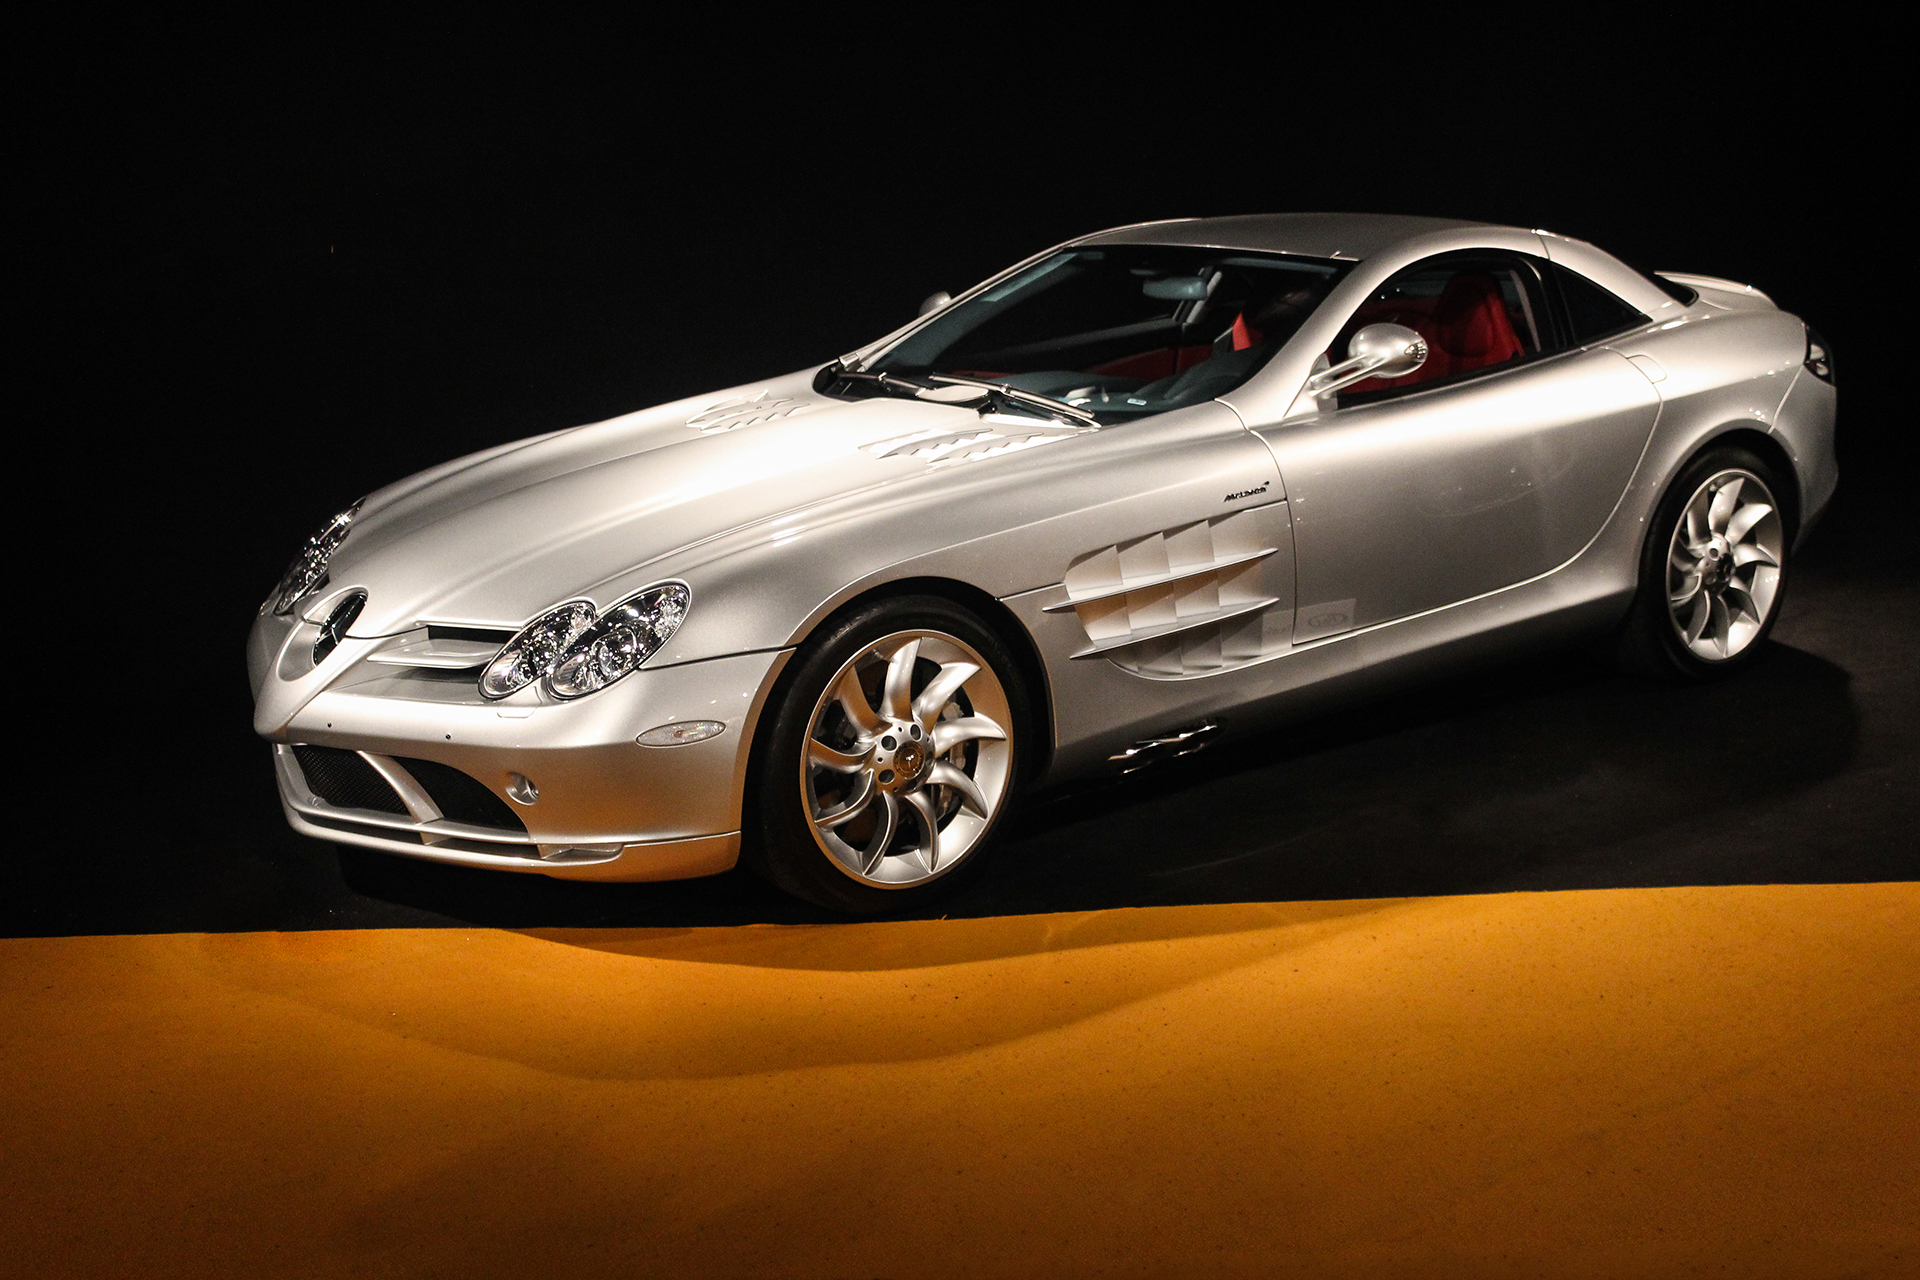 Mercedes-Benz SLR Mclaren - 2004- RM - Auctions - 2016 - Arnaud Demasier RS Photographie